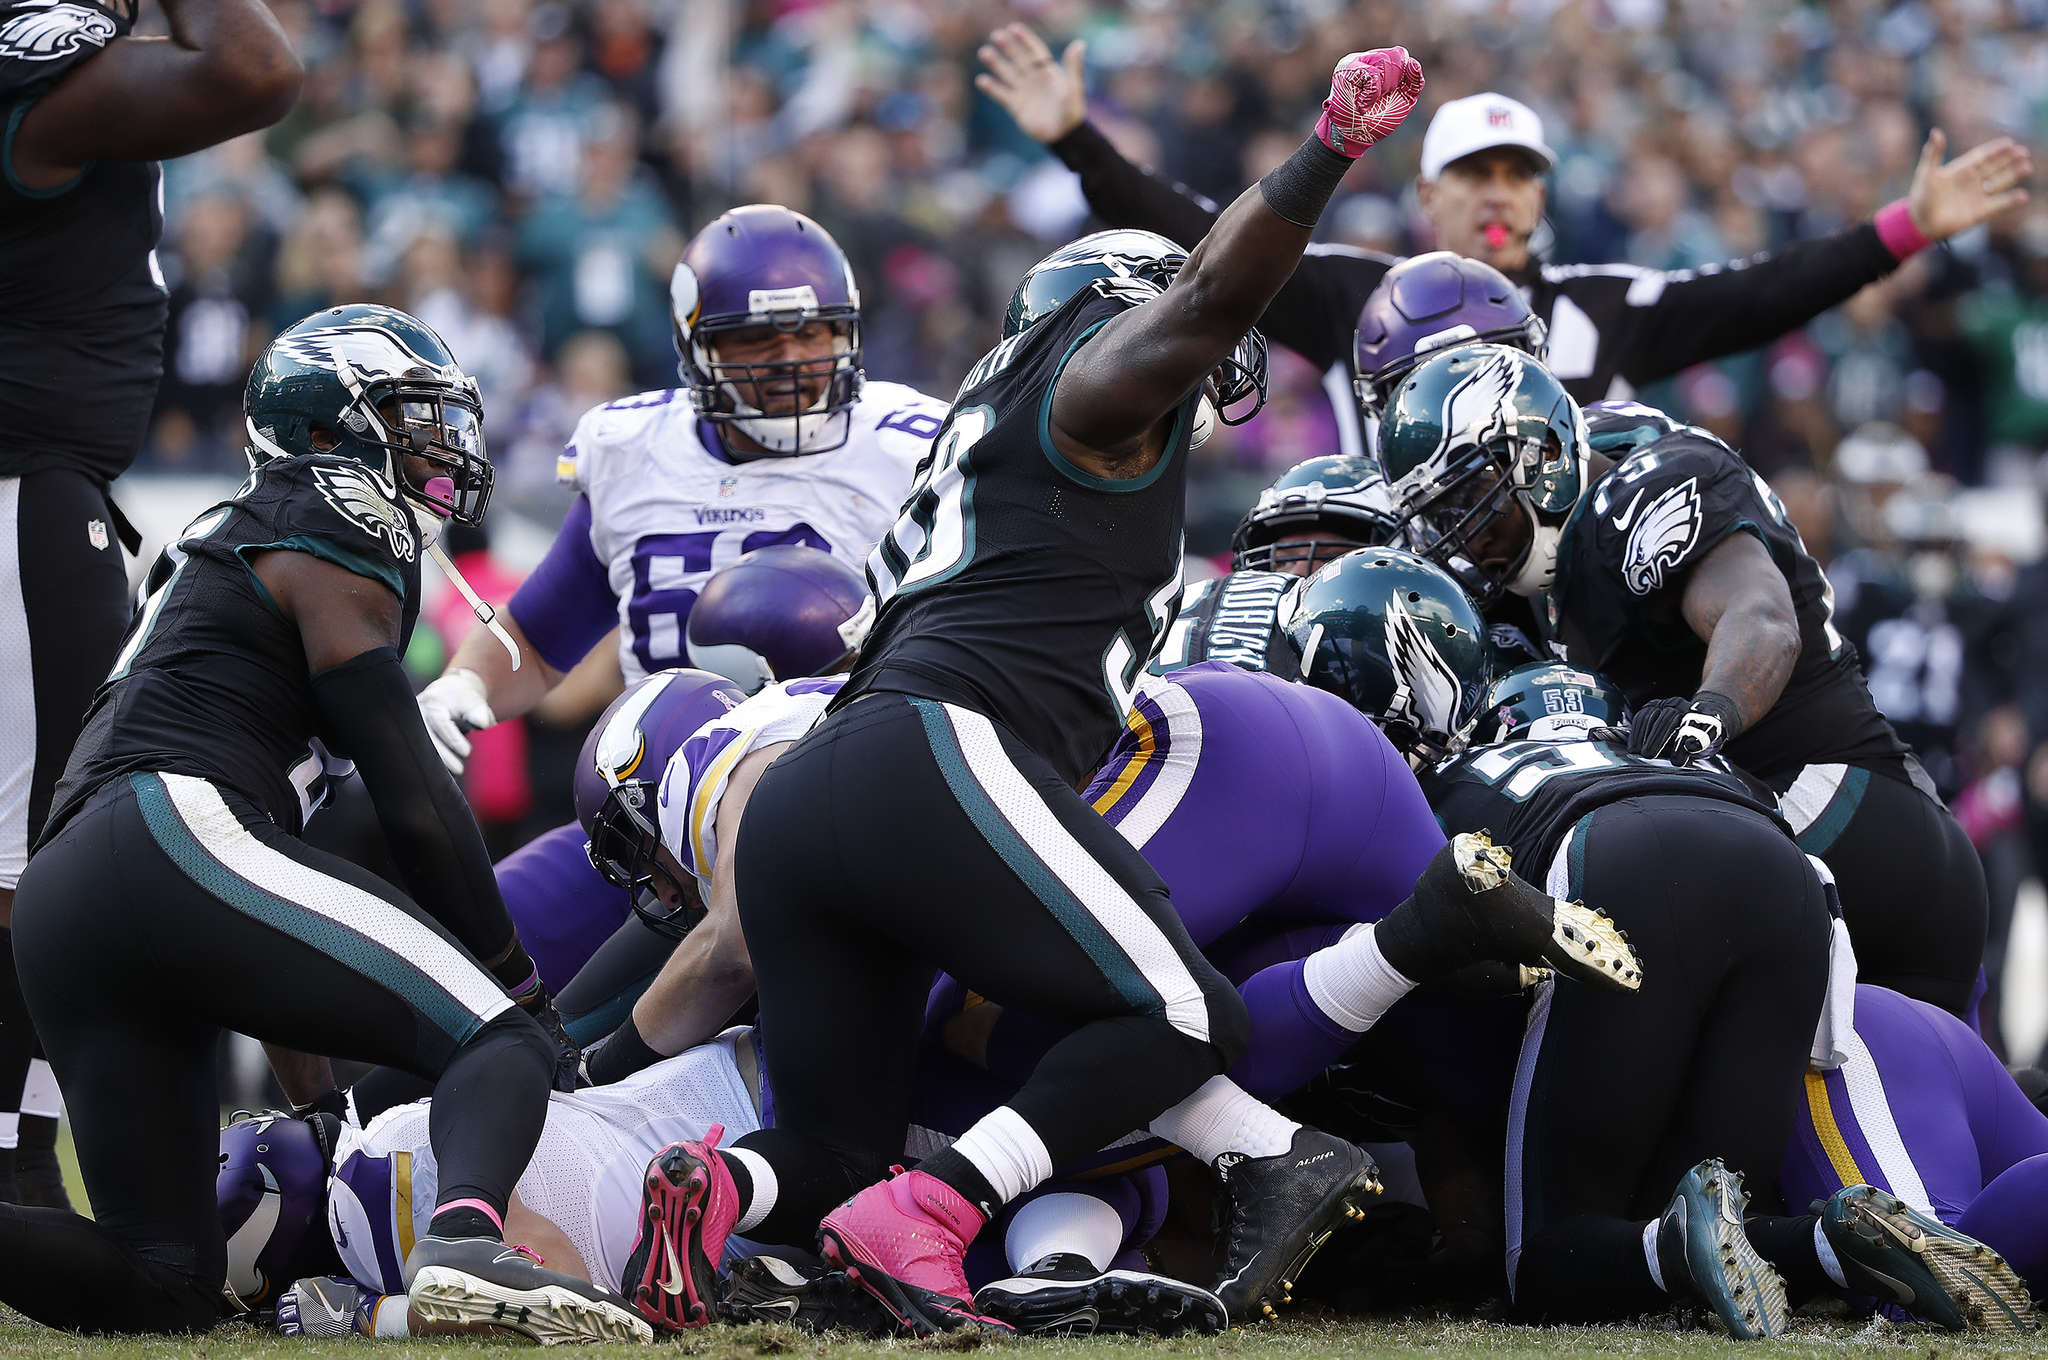 The Eagles stop the Vikings on fourth down at the 6 early in the fourth quarter. DAVID MAIALETTI / Staff Photographer